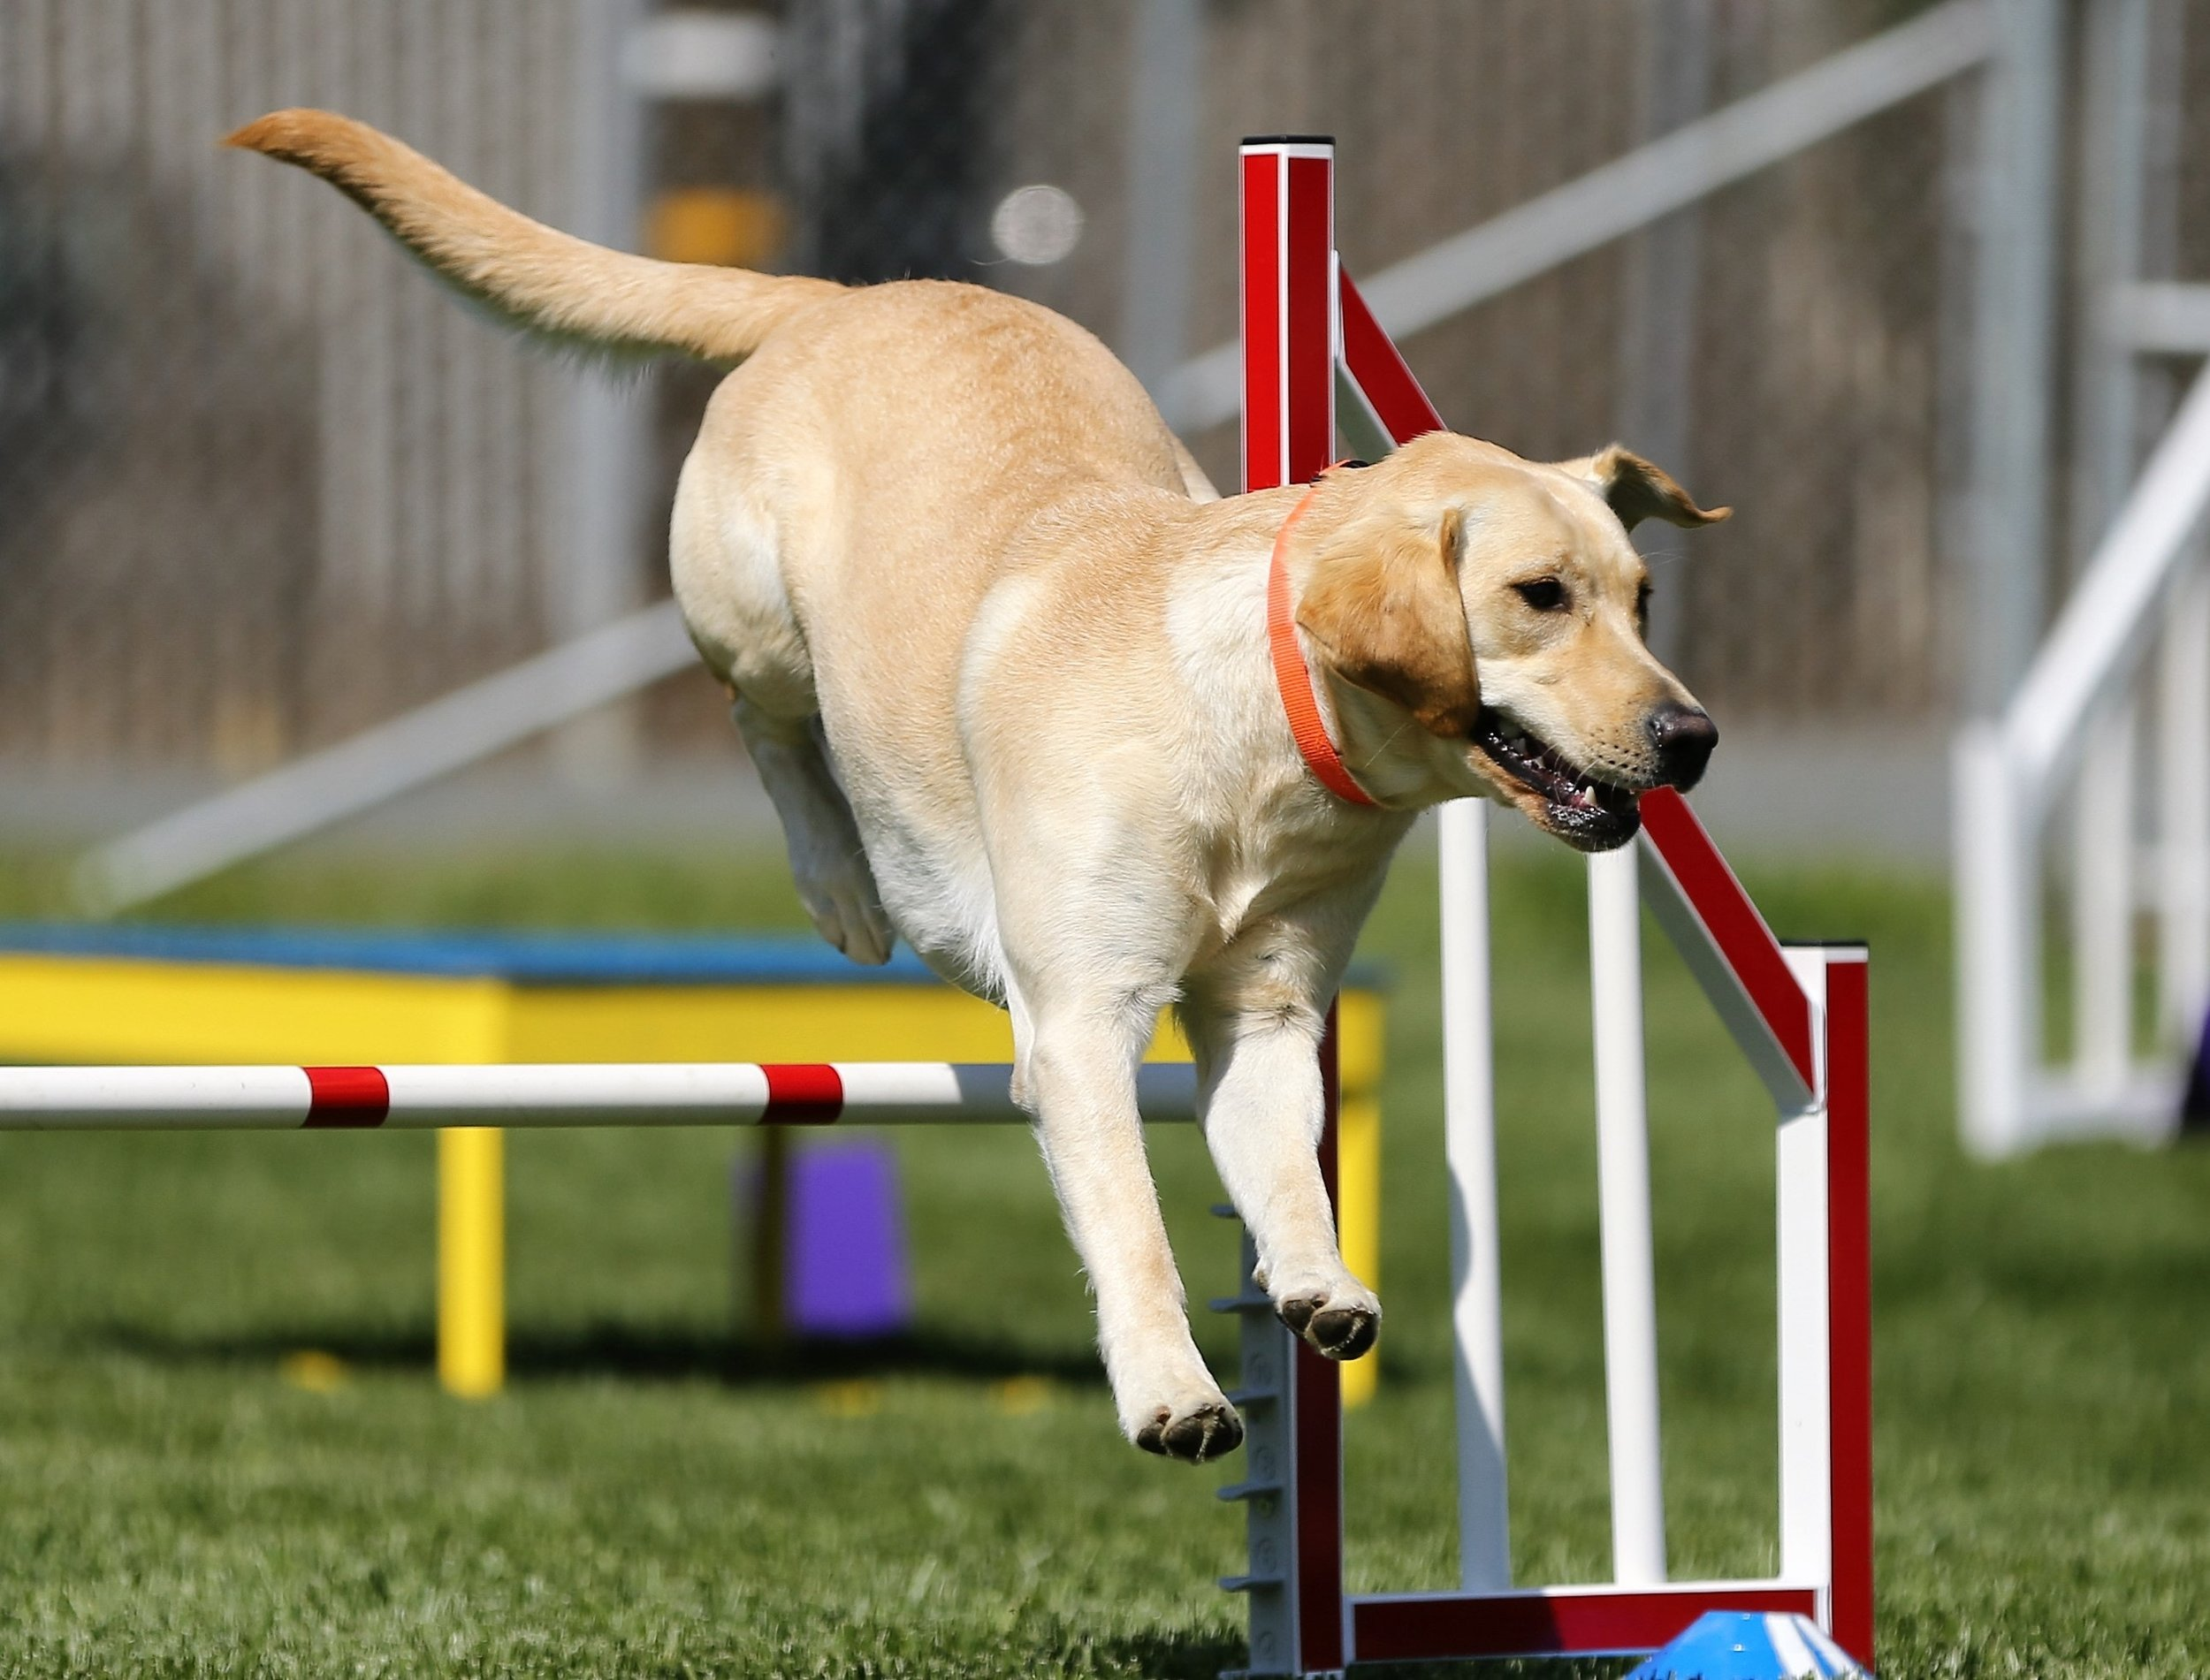 Dogs naturally love to jump!